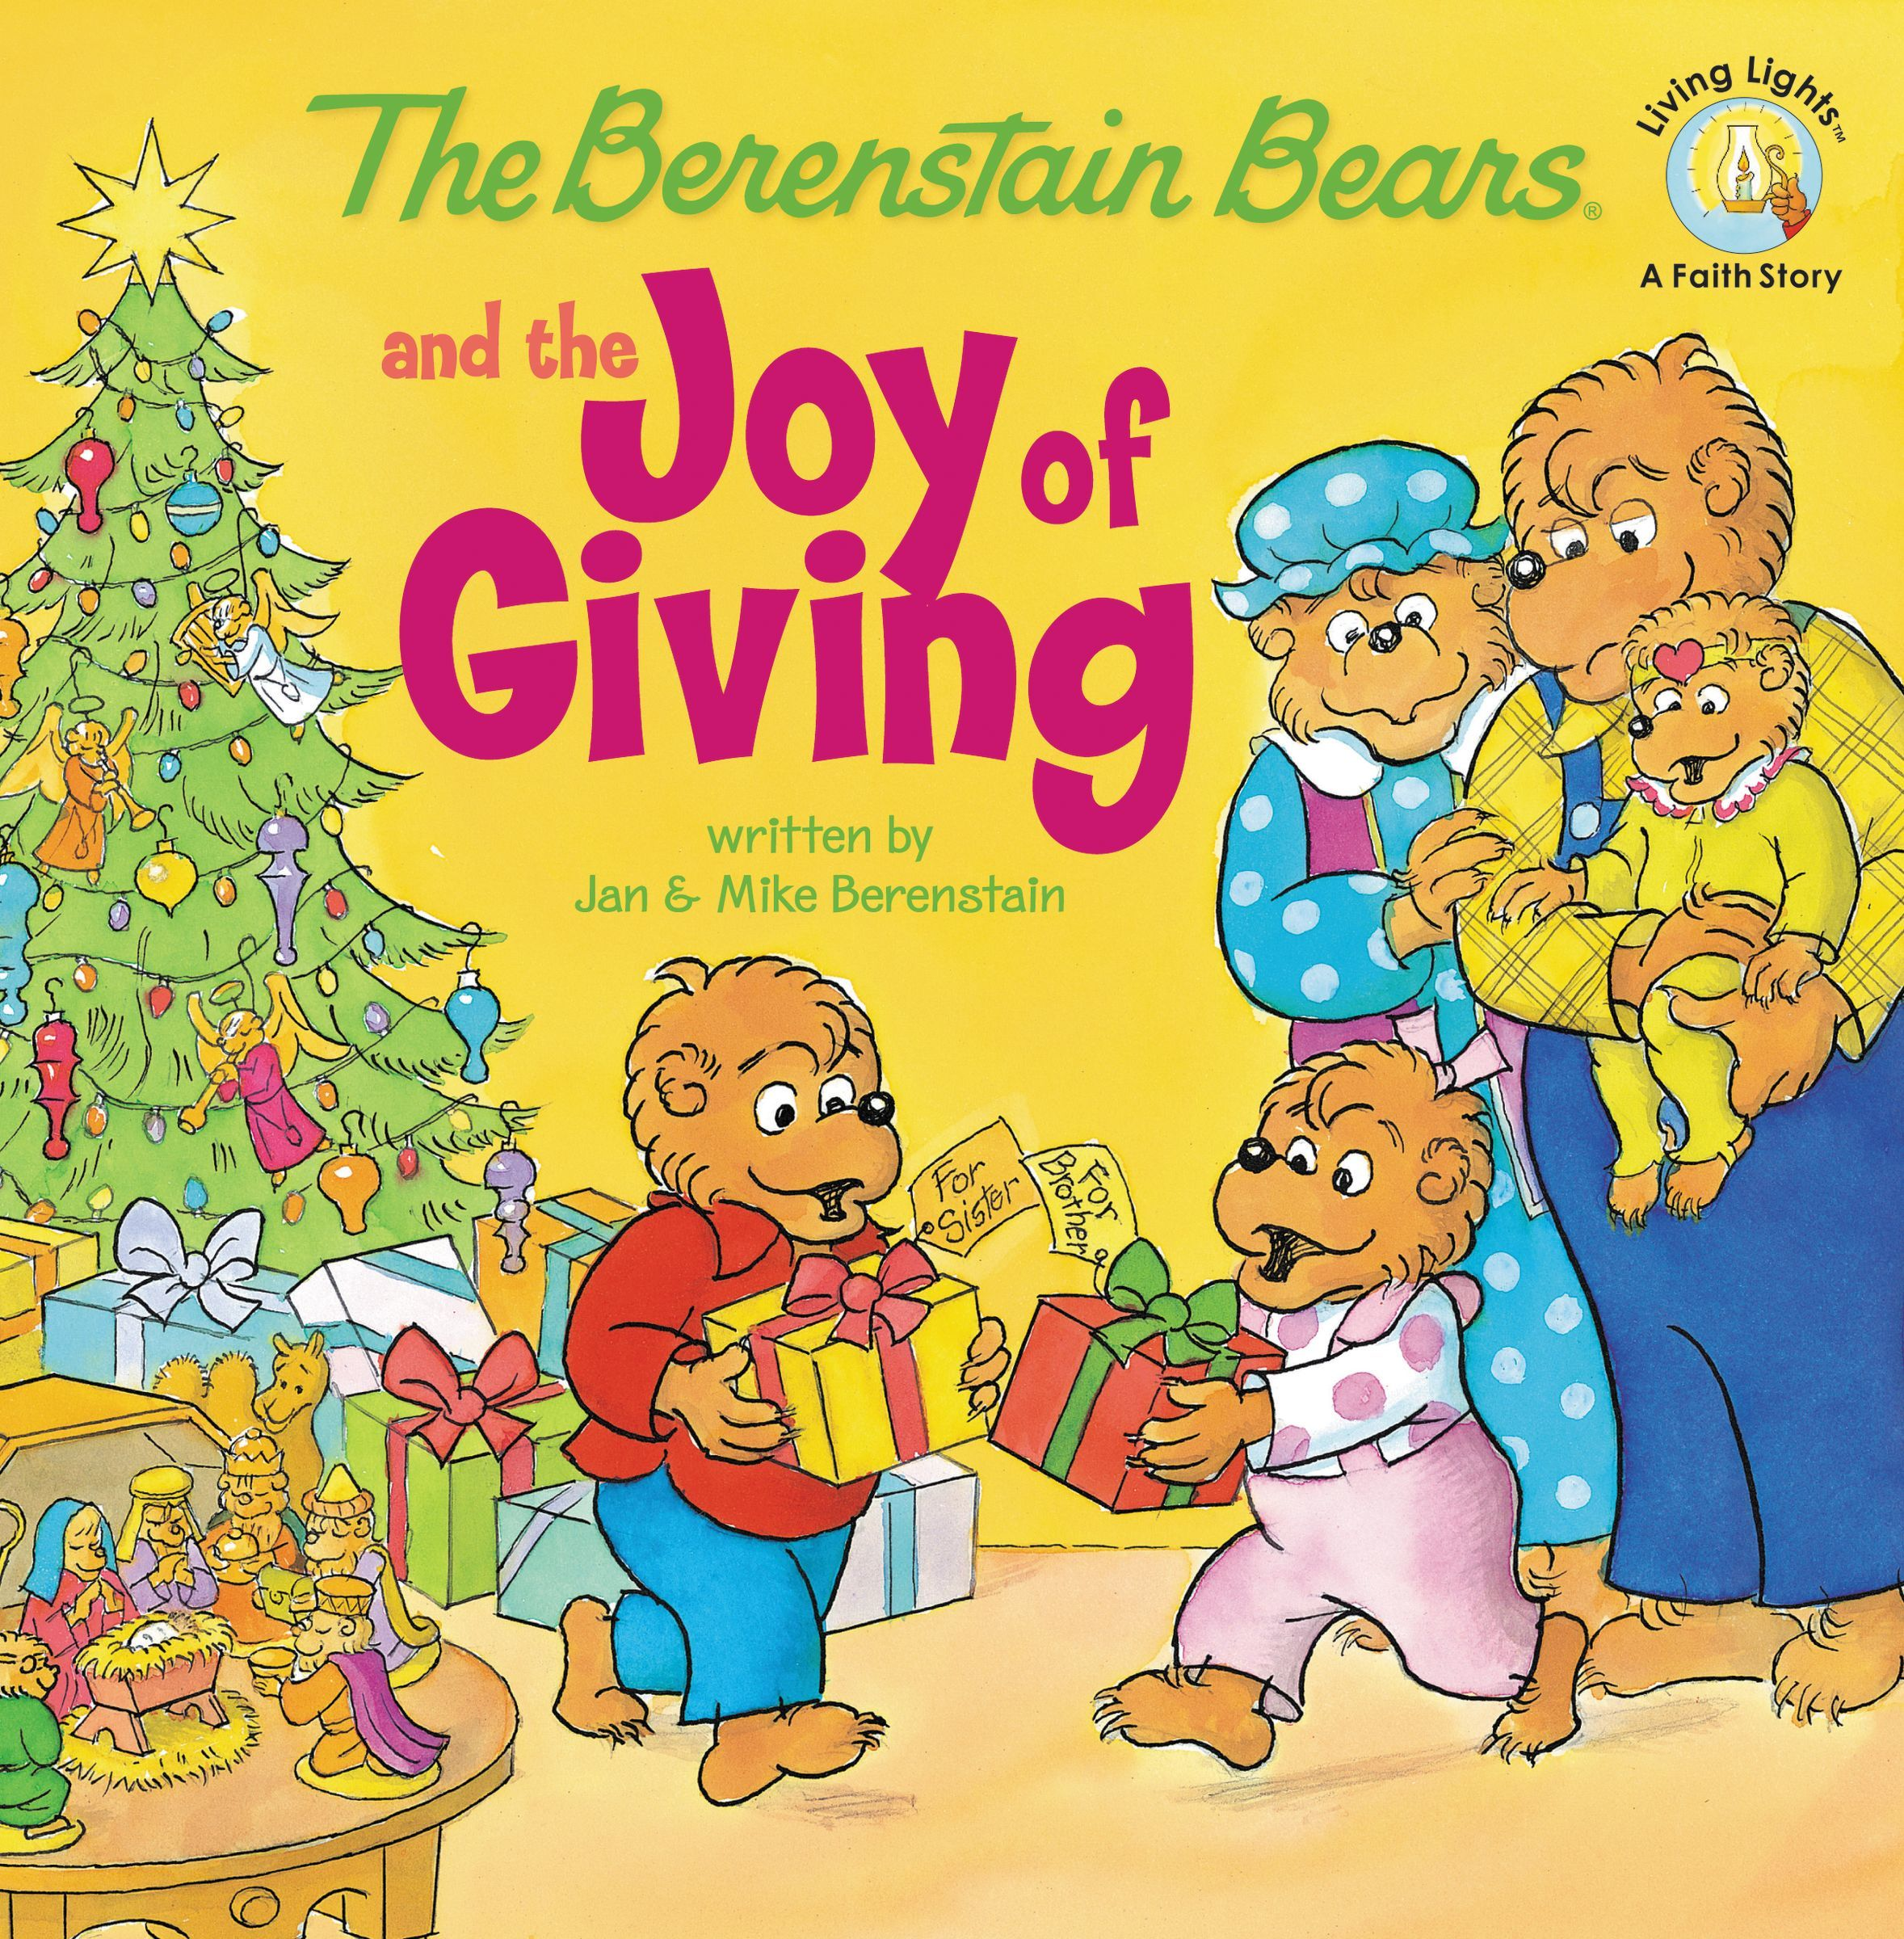 Berenstain Bears and the Joy of Giving